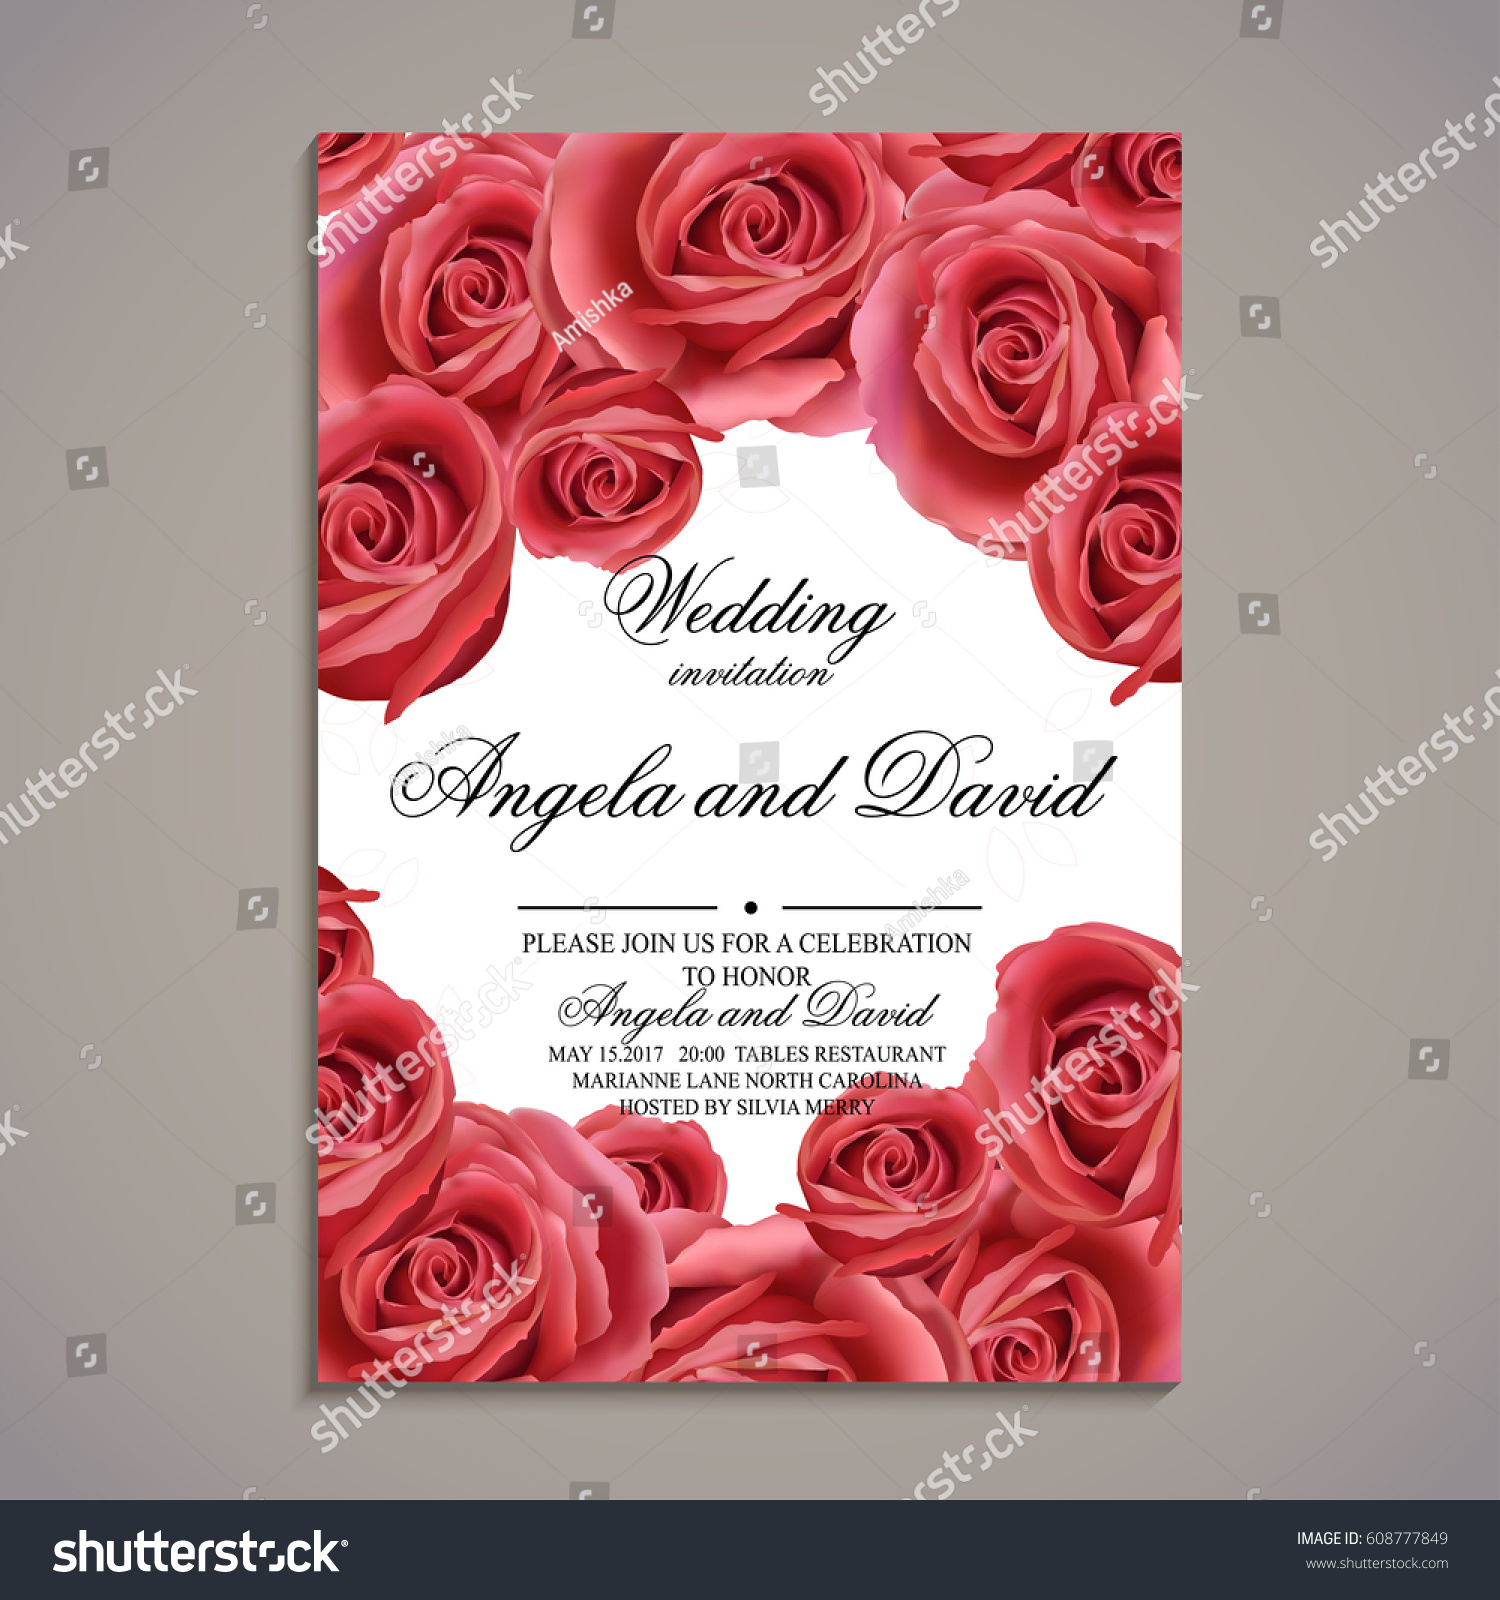 Wedding Invitation Card Rose Flowers Template Stock Vector (Royalty ...